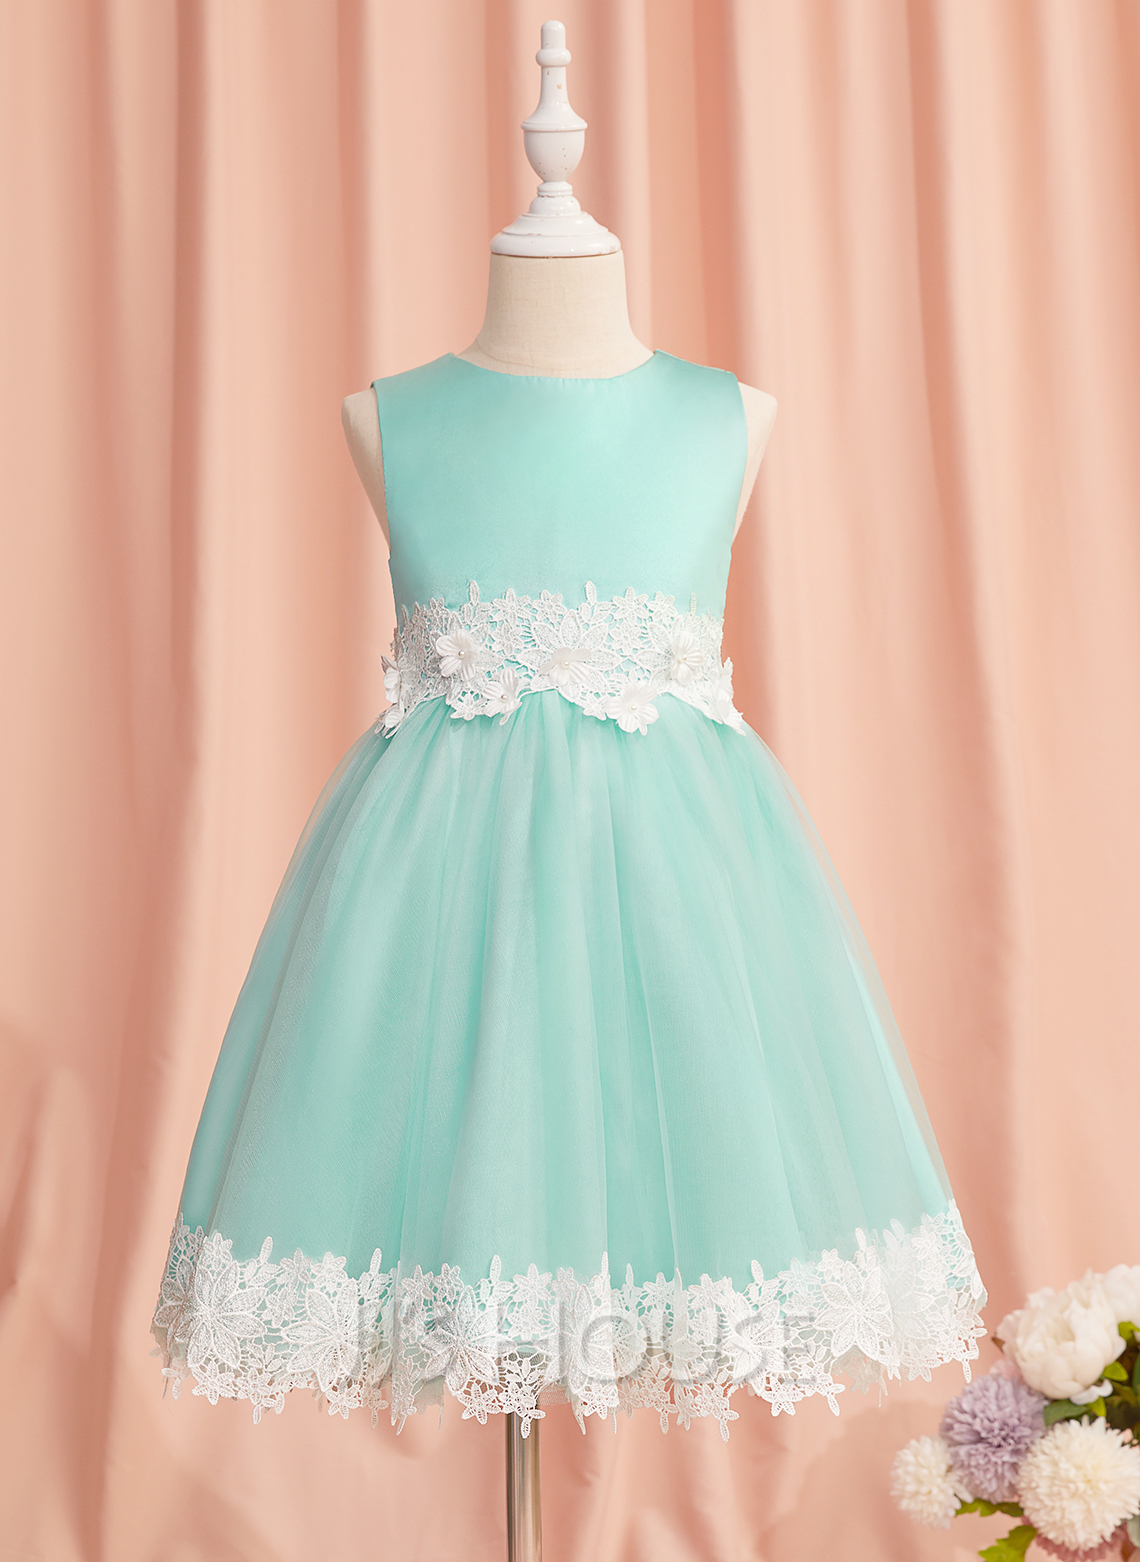 A-Line Knee-length Flower Girl Dress - Satin/Tulle Sleeveless Scoop Neck With Lace/Beading/Flower(s)